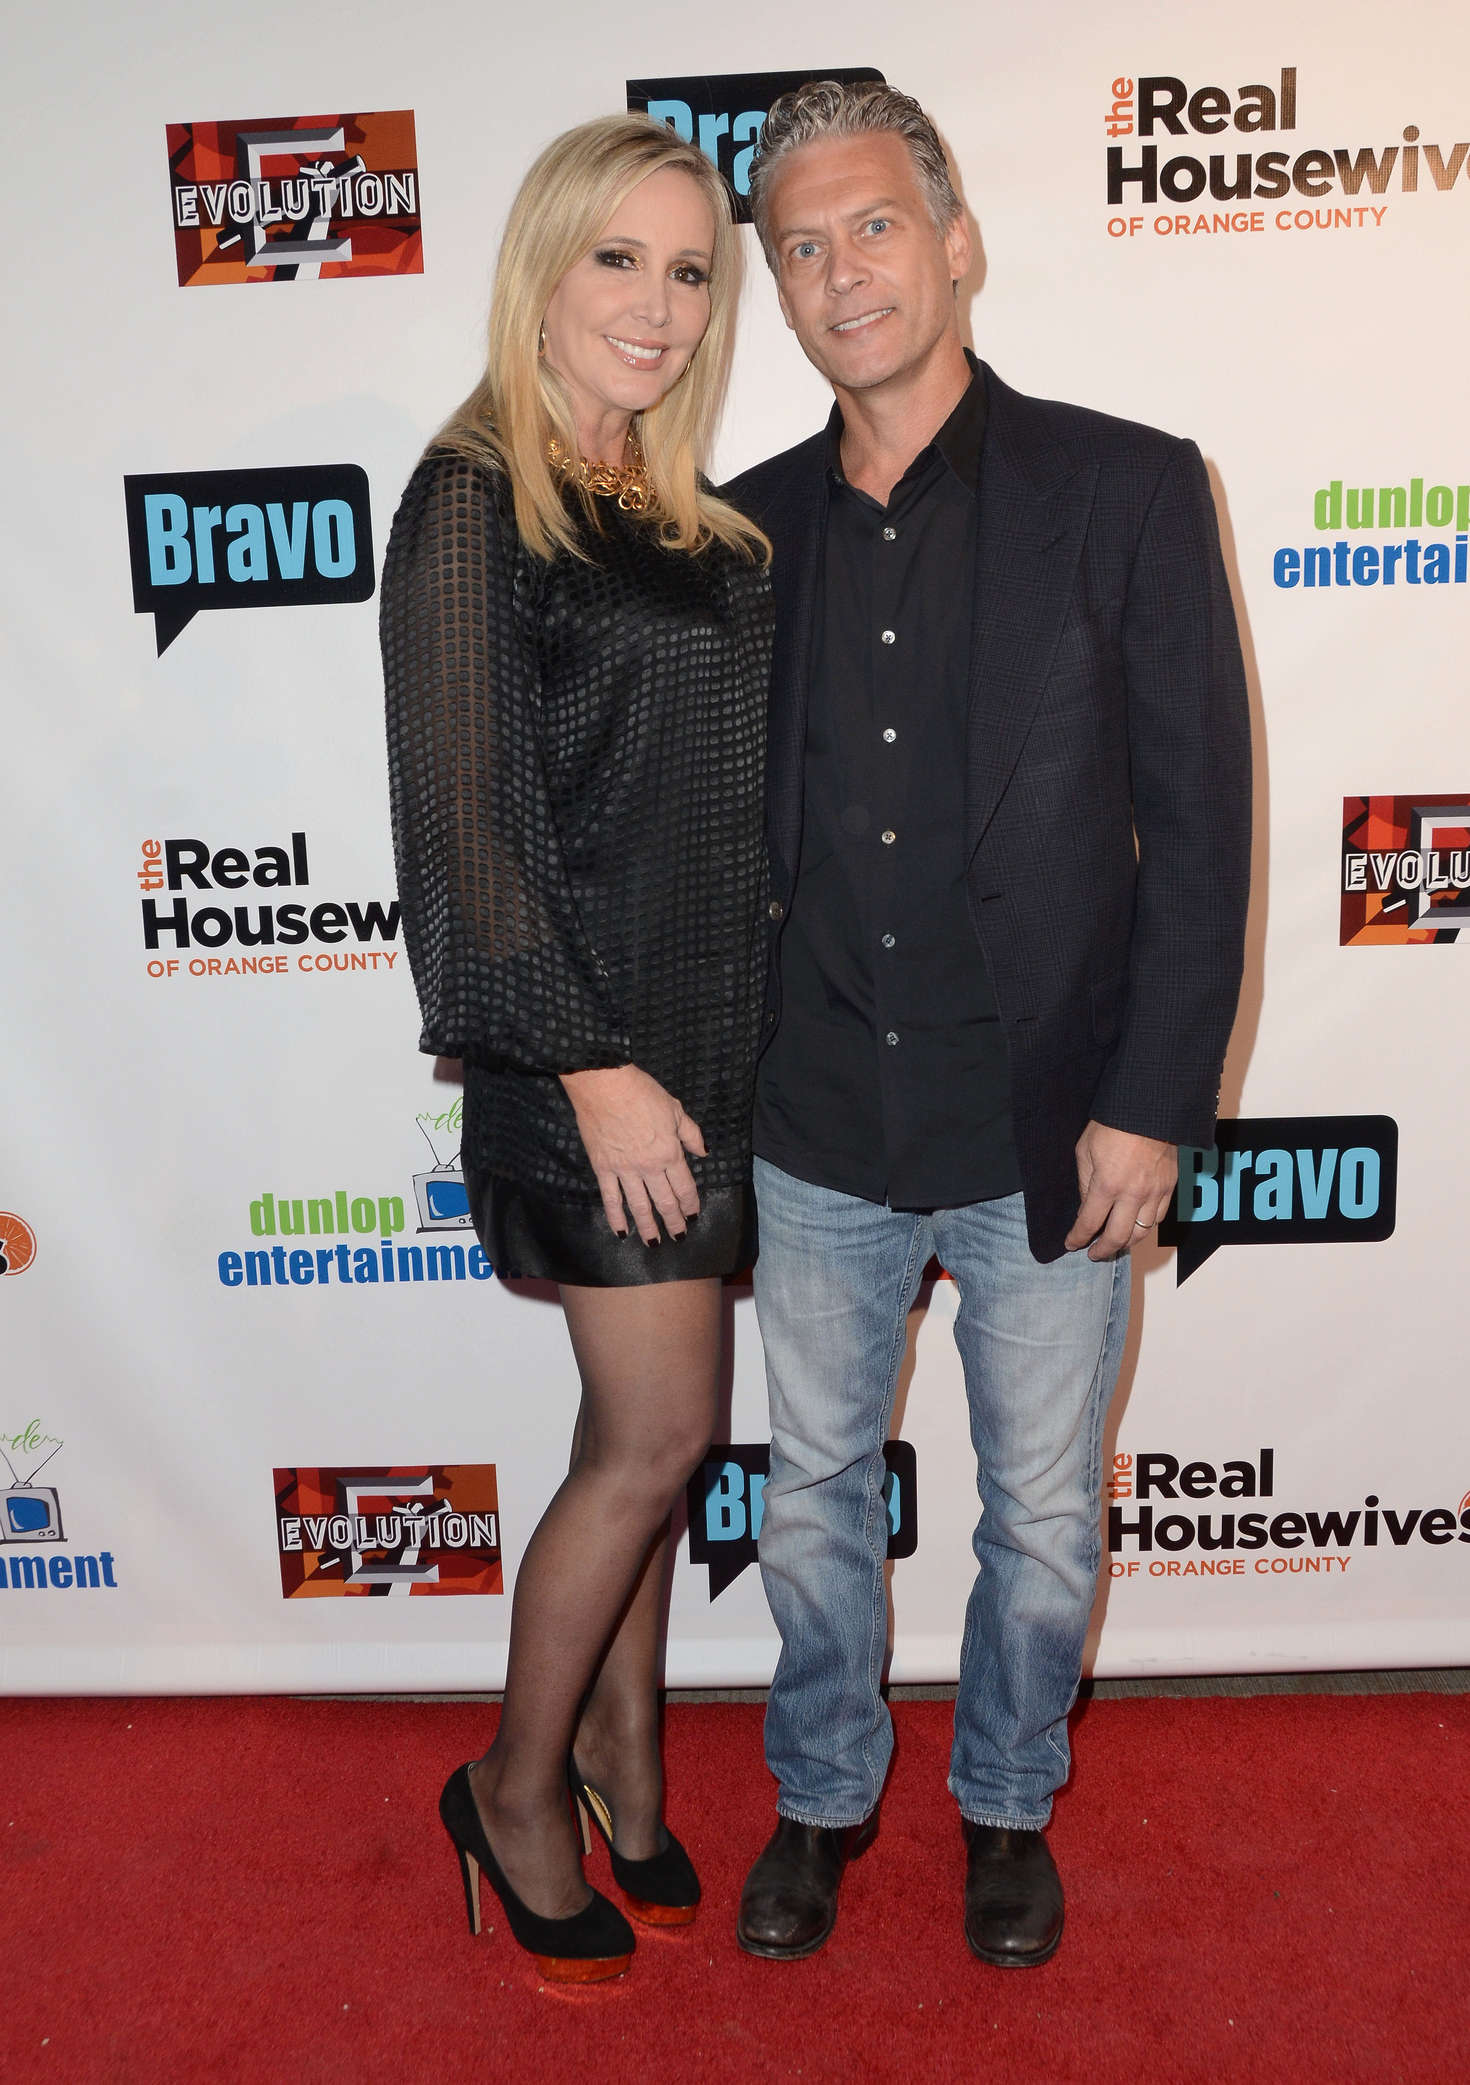 7a7d92783fd Shannon Beador  The Real Housewives of Orange County Season 11 Premiere -02